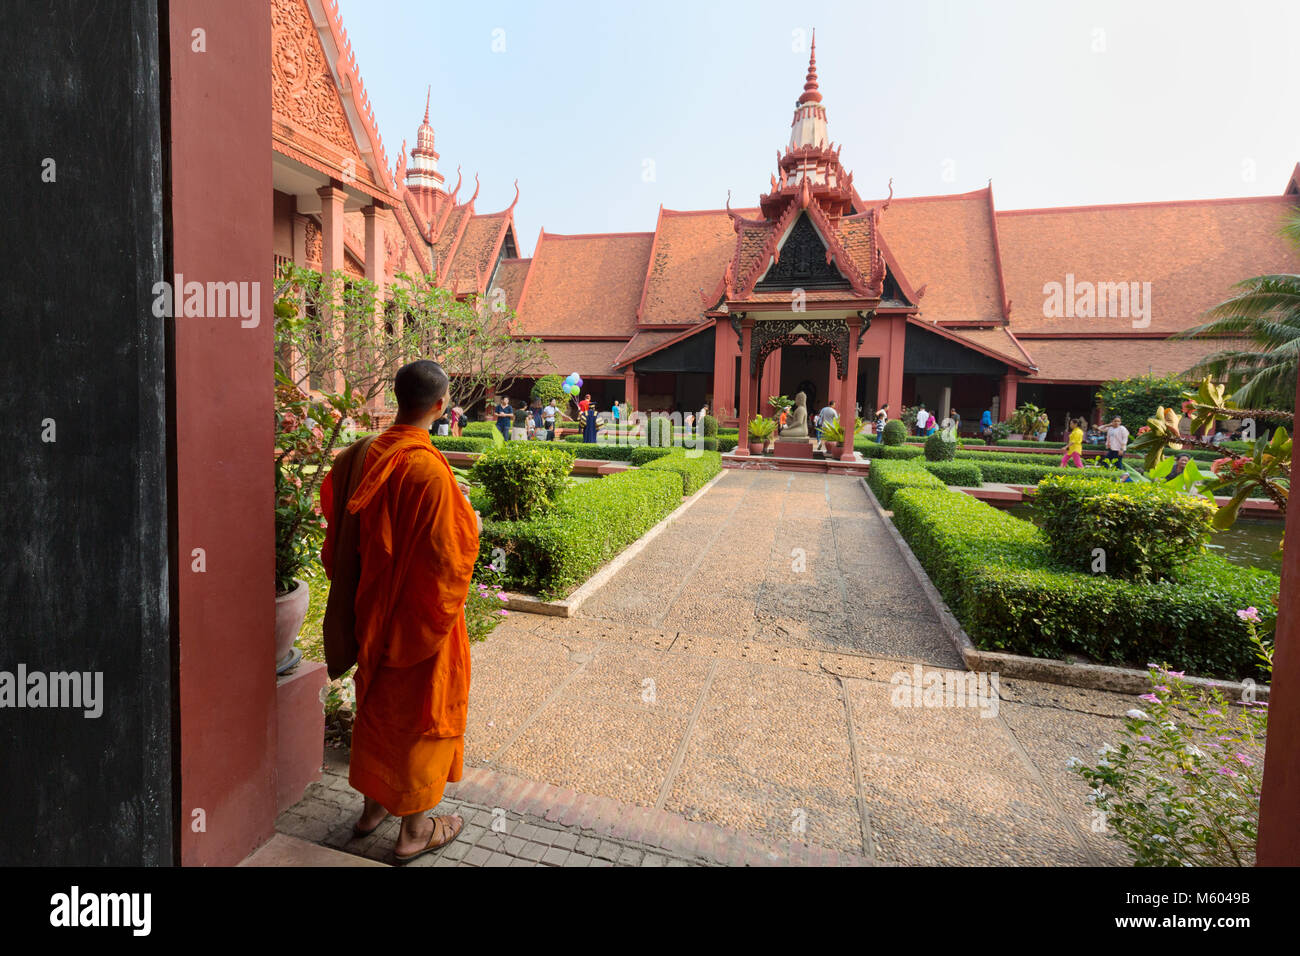 Cambodia  monk in the garden of the National Museum of Cambodia, Phnom Penh, Cambodia Asia - Stock Image